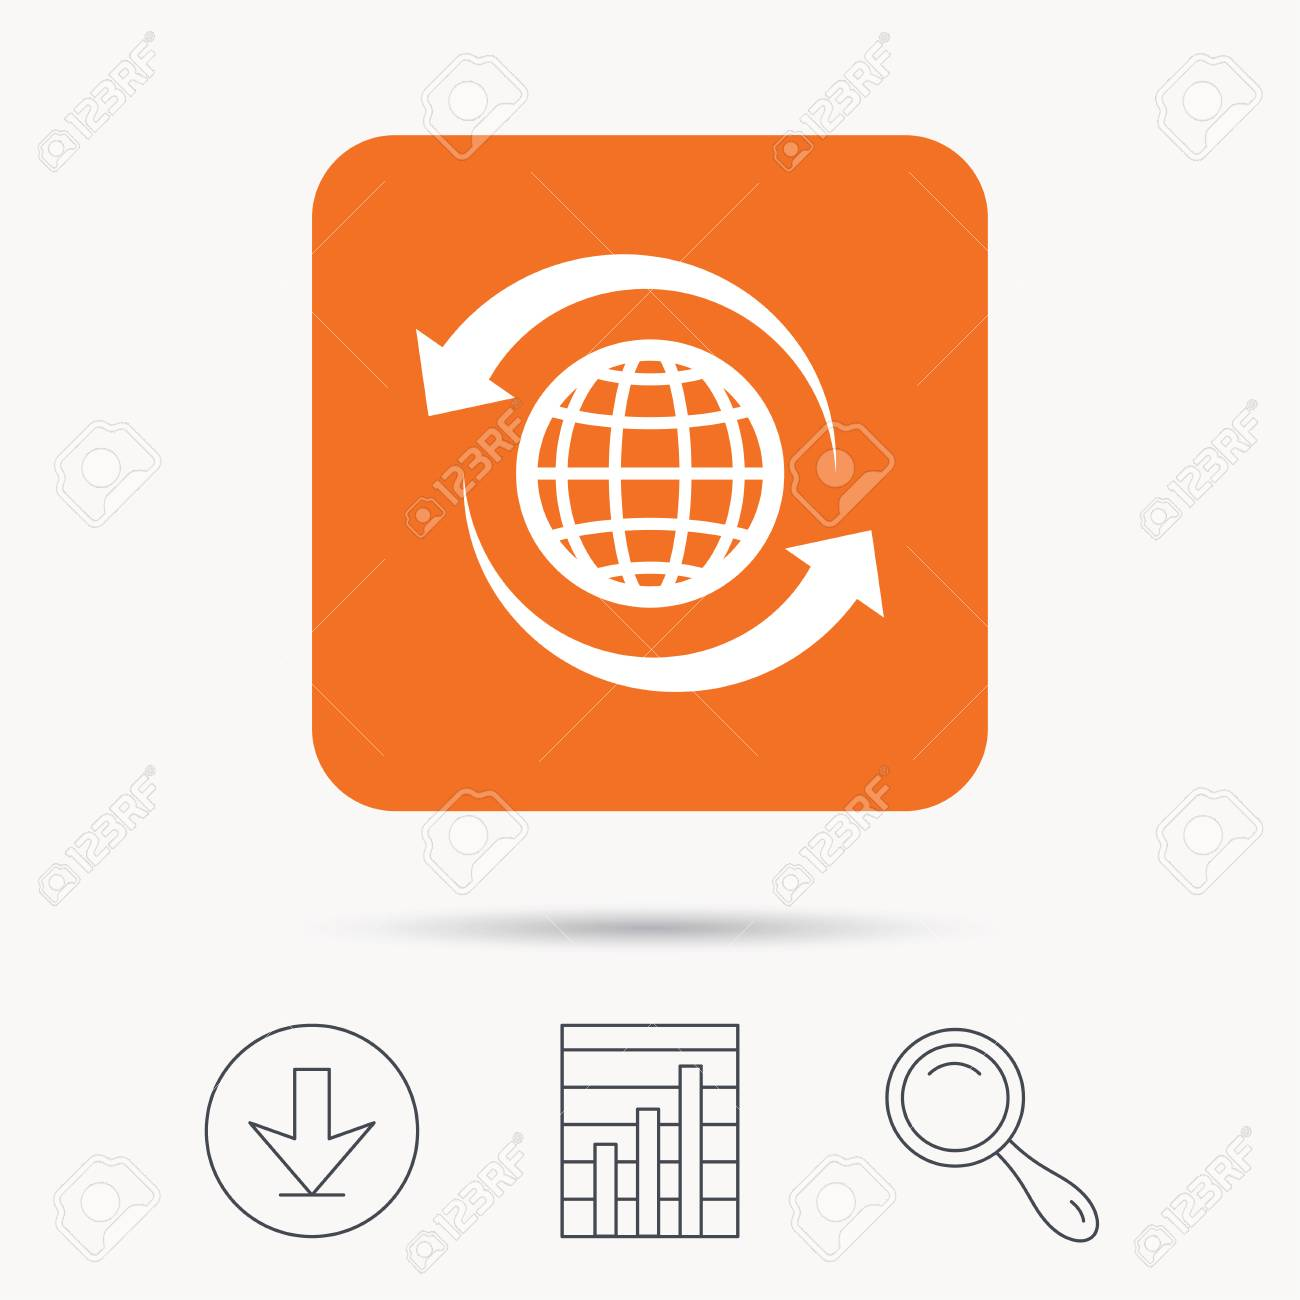 hight resolution of globe icon world or internet symbol report chart download and magnifier search signs